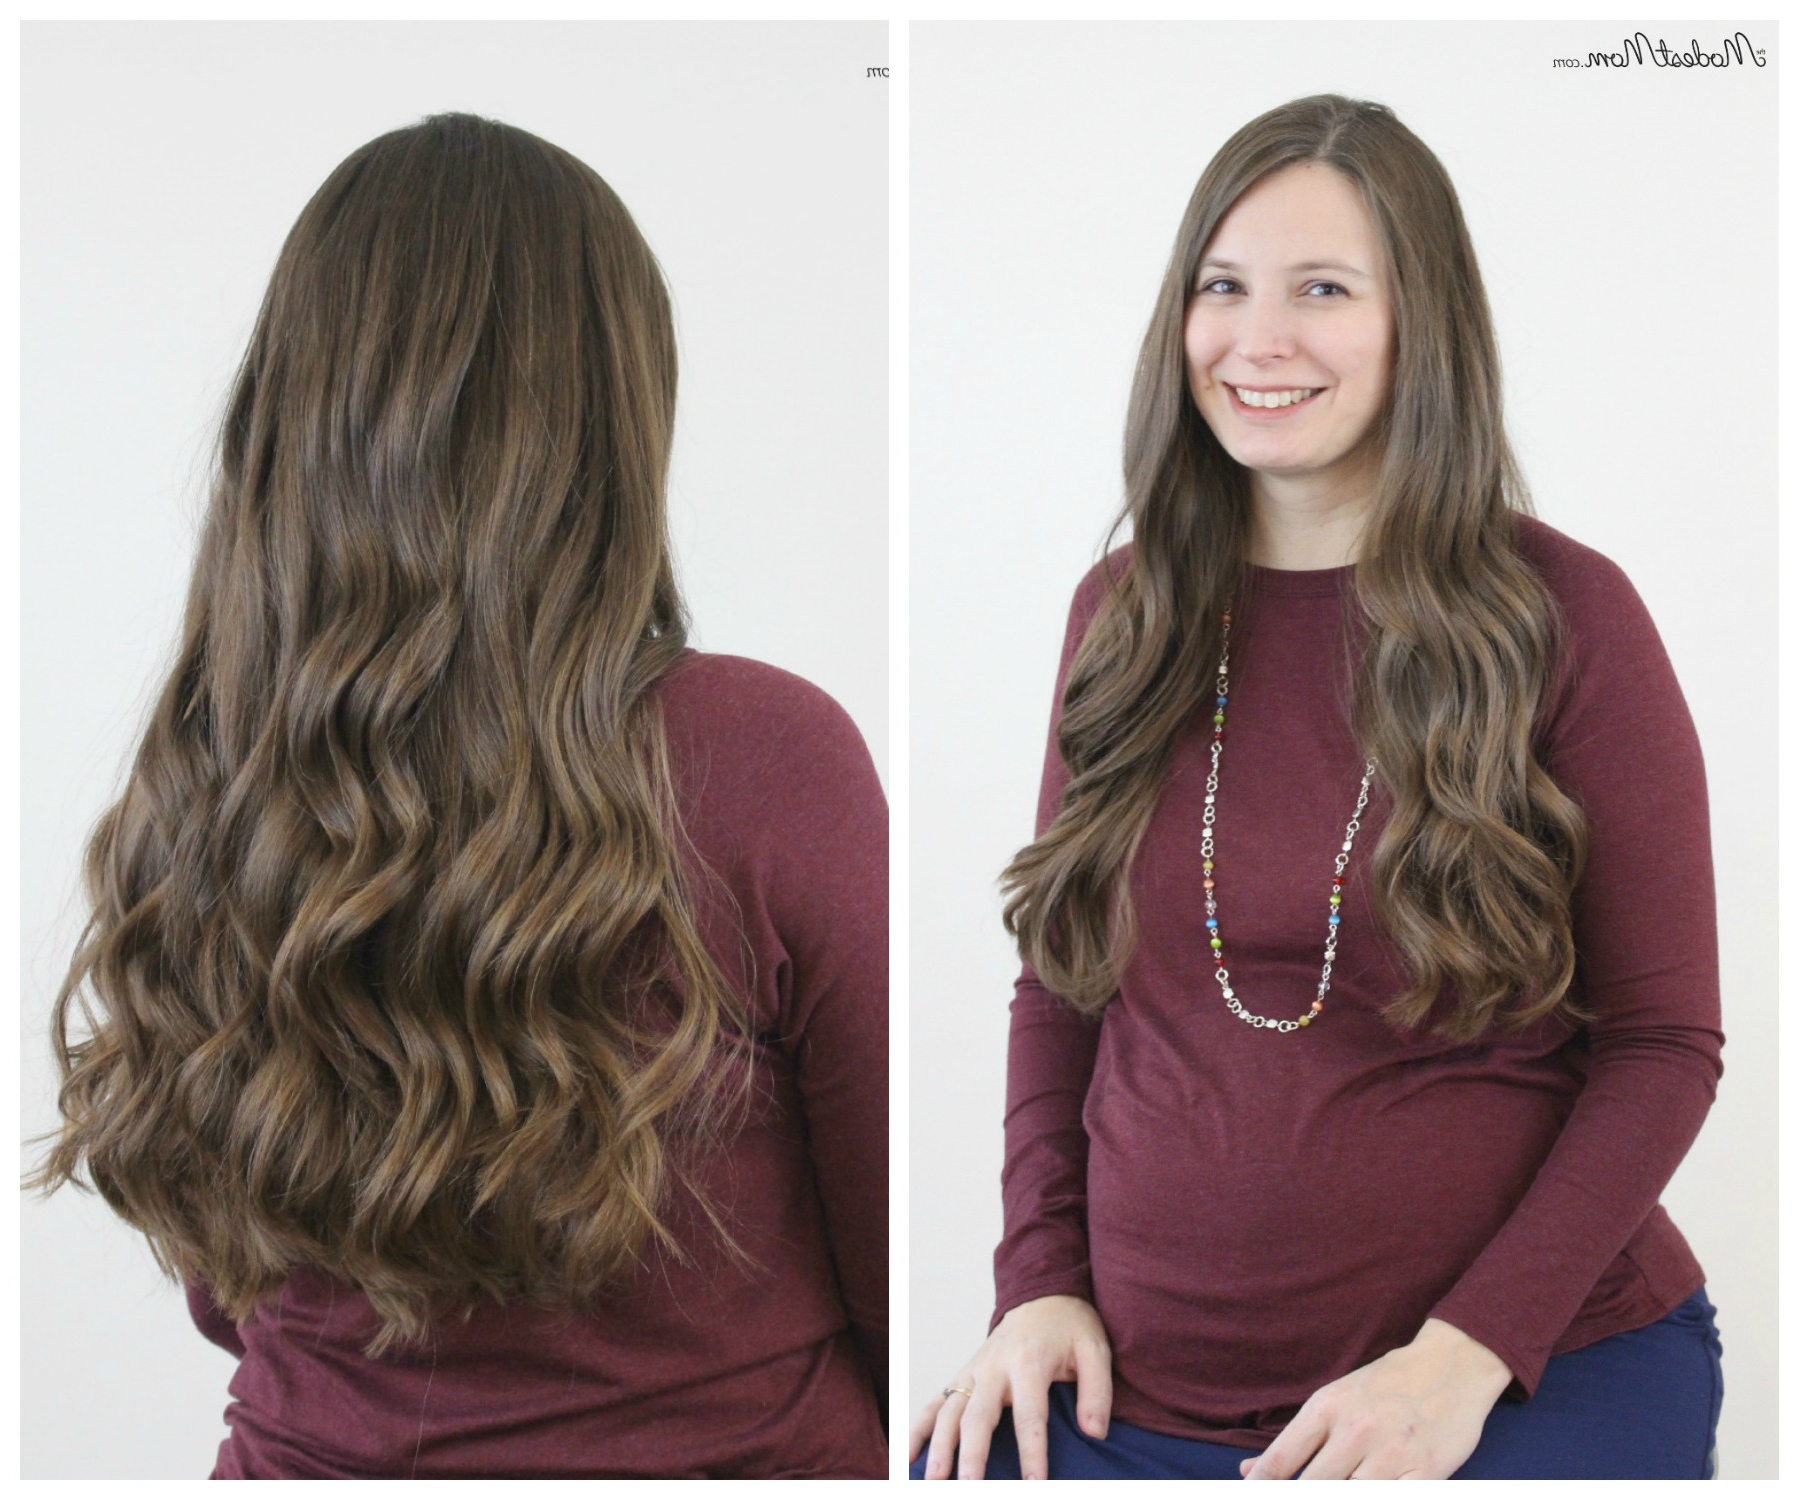 How To Get Spiral Wave Curls In Seven Easy Steps! In Fashionable Winding Waves Hairstyles (View 6 of 20)